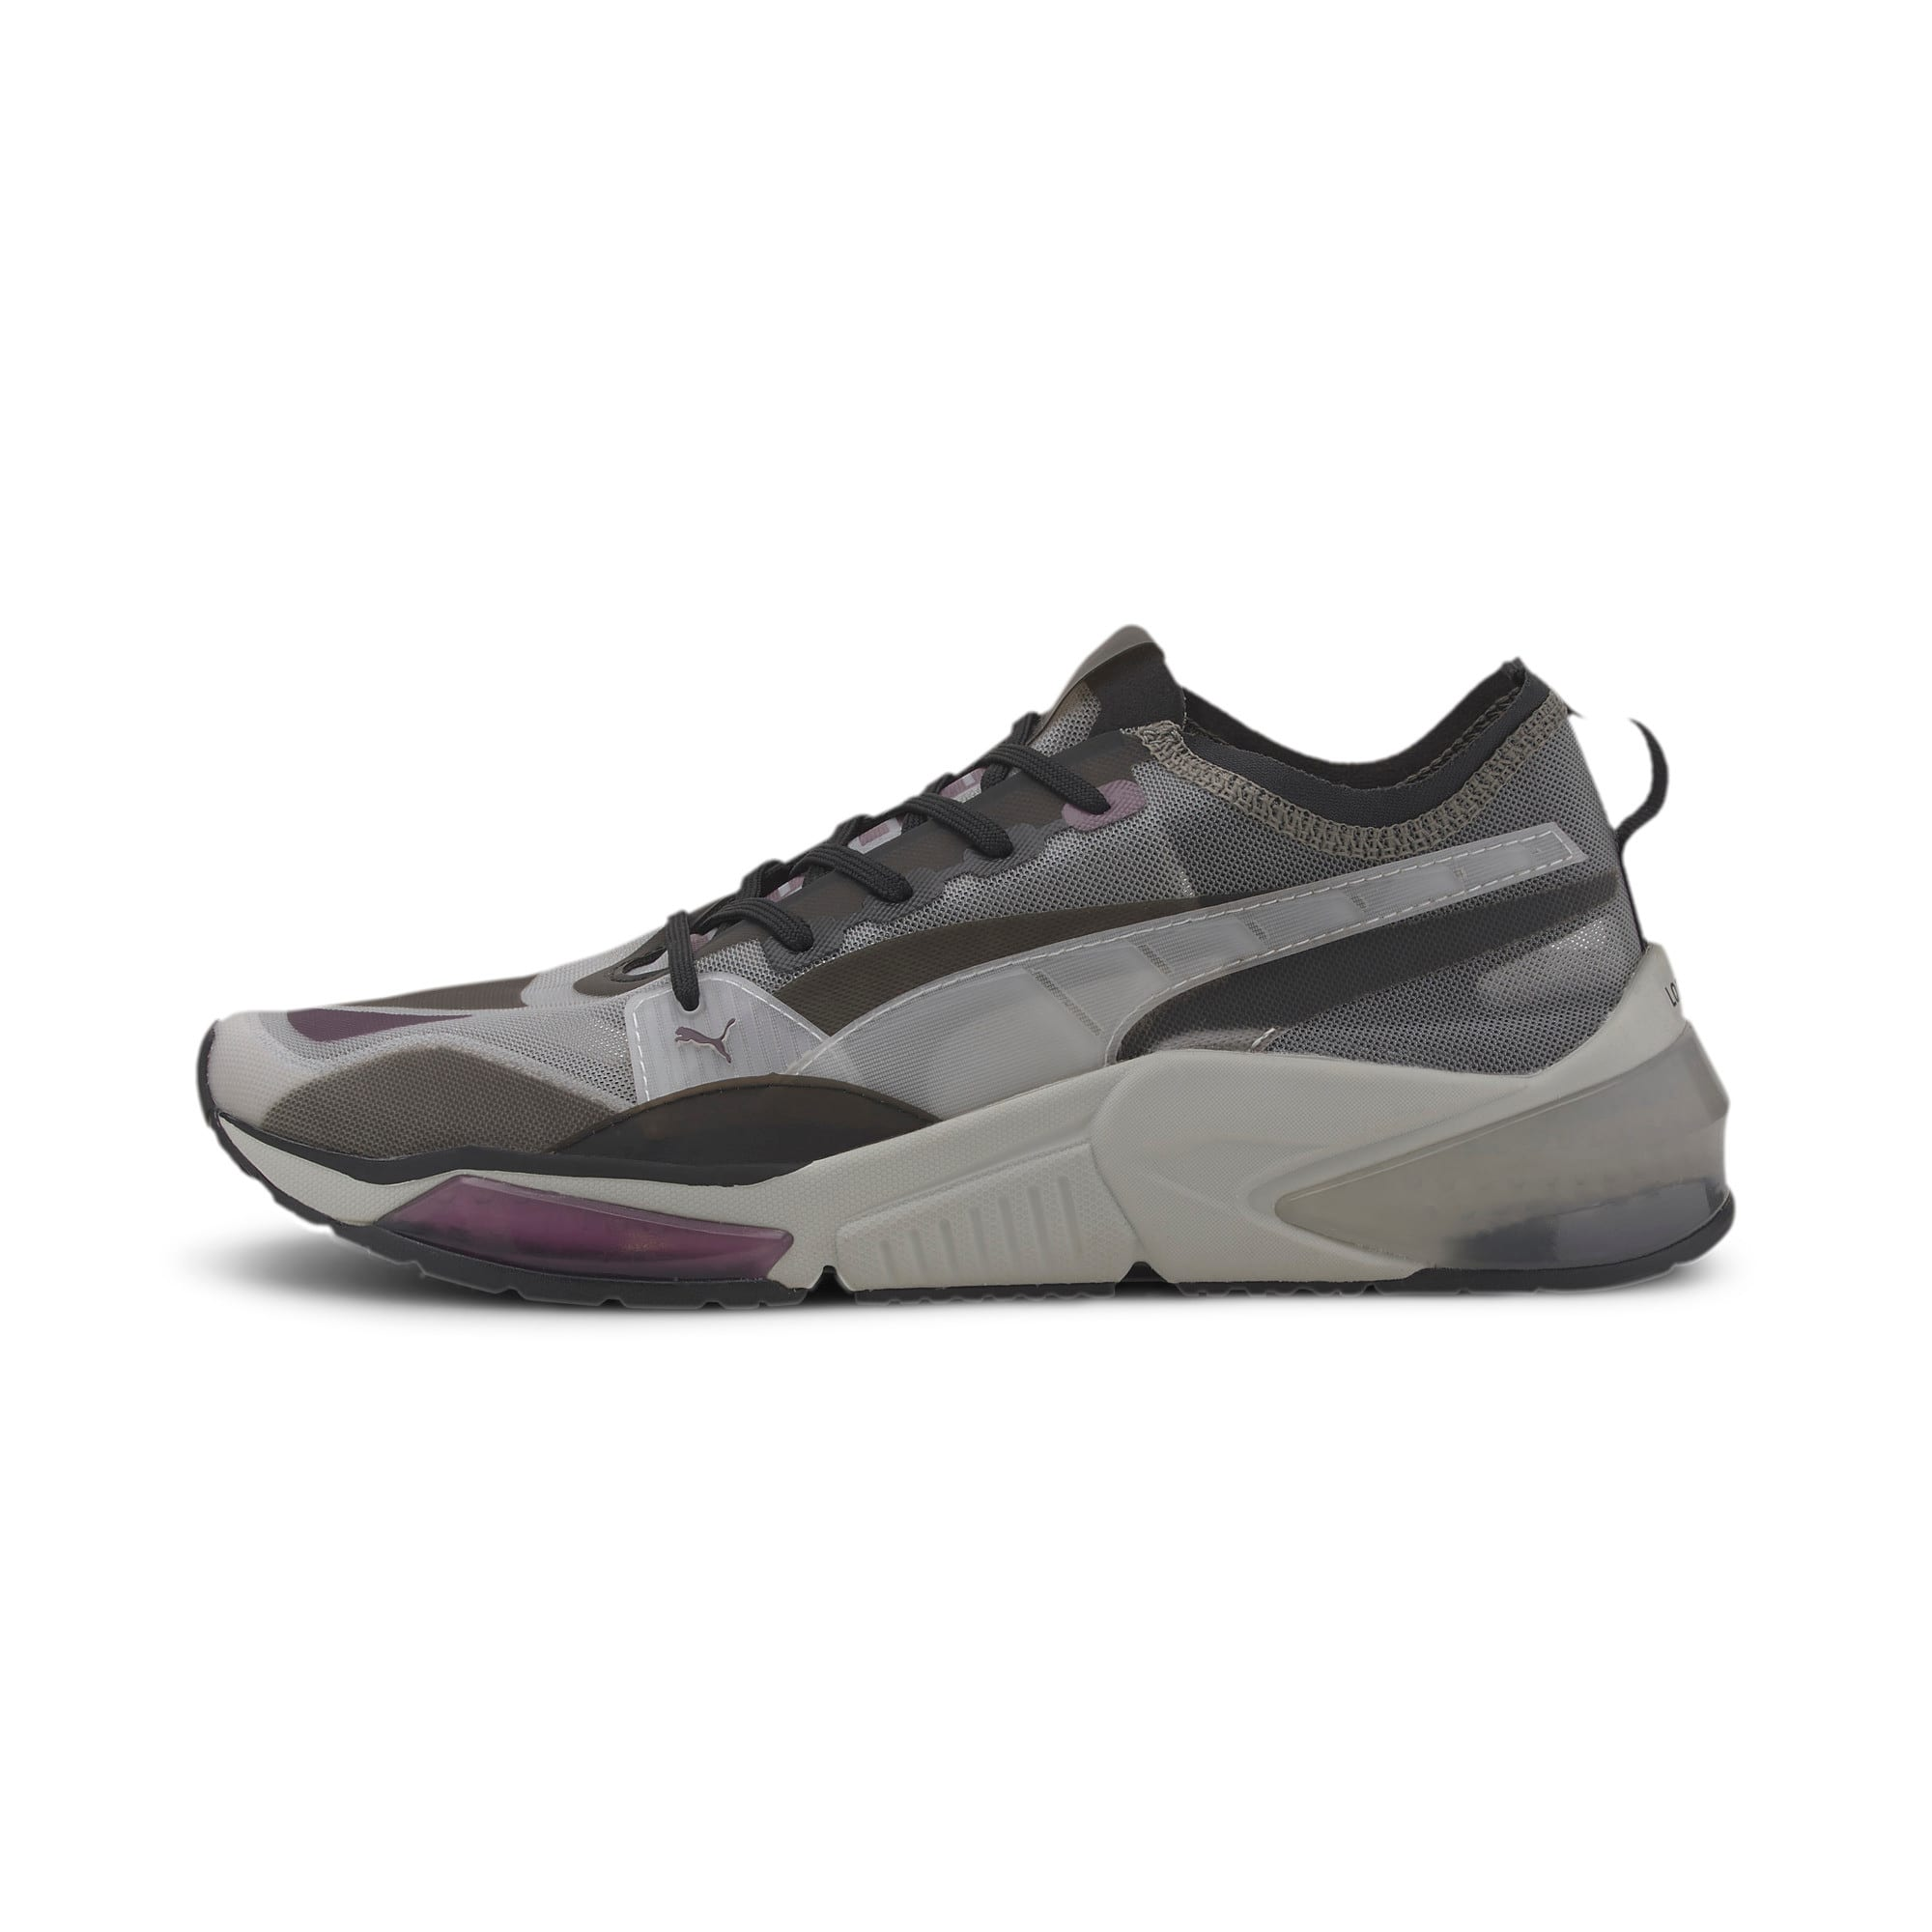 Thumbnail 1 of LQDCELL Optic Sheer Training Shoes, Gray Violet-Puma Black, medium